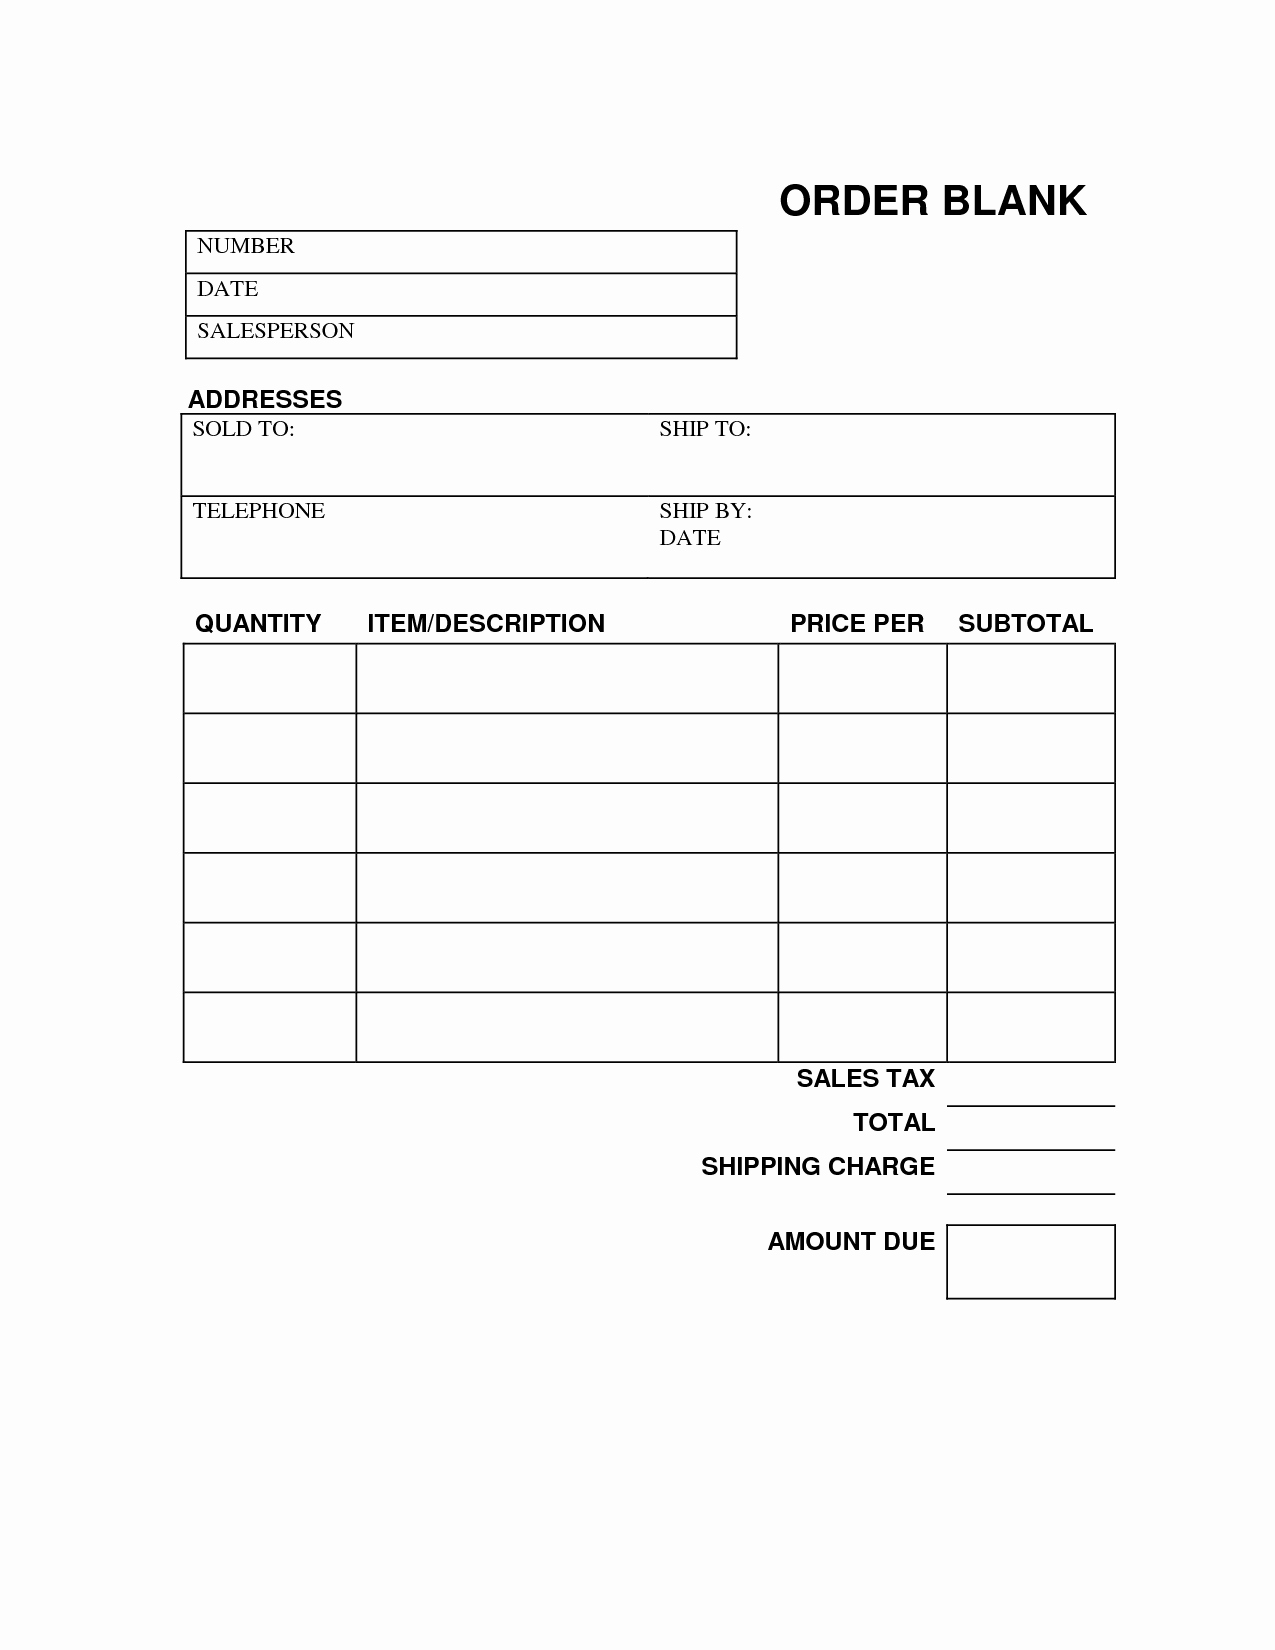 Printable order forms Templates Fresh Blank order form Printable